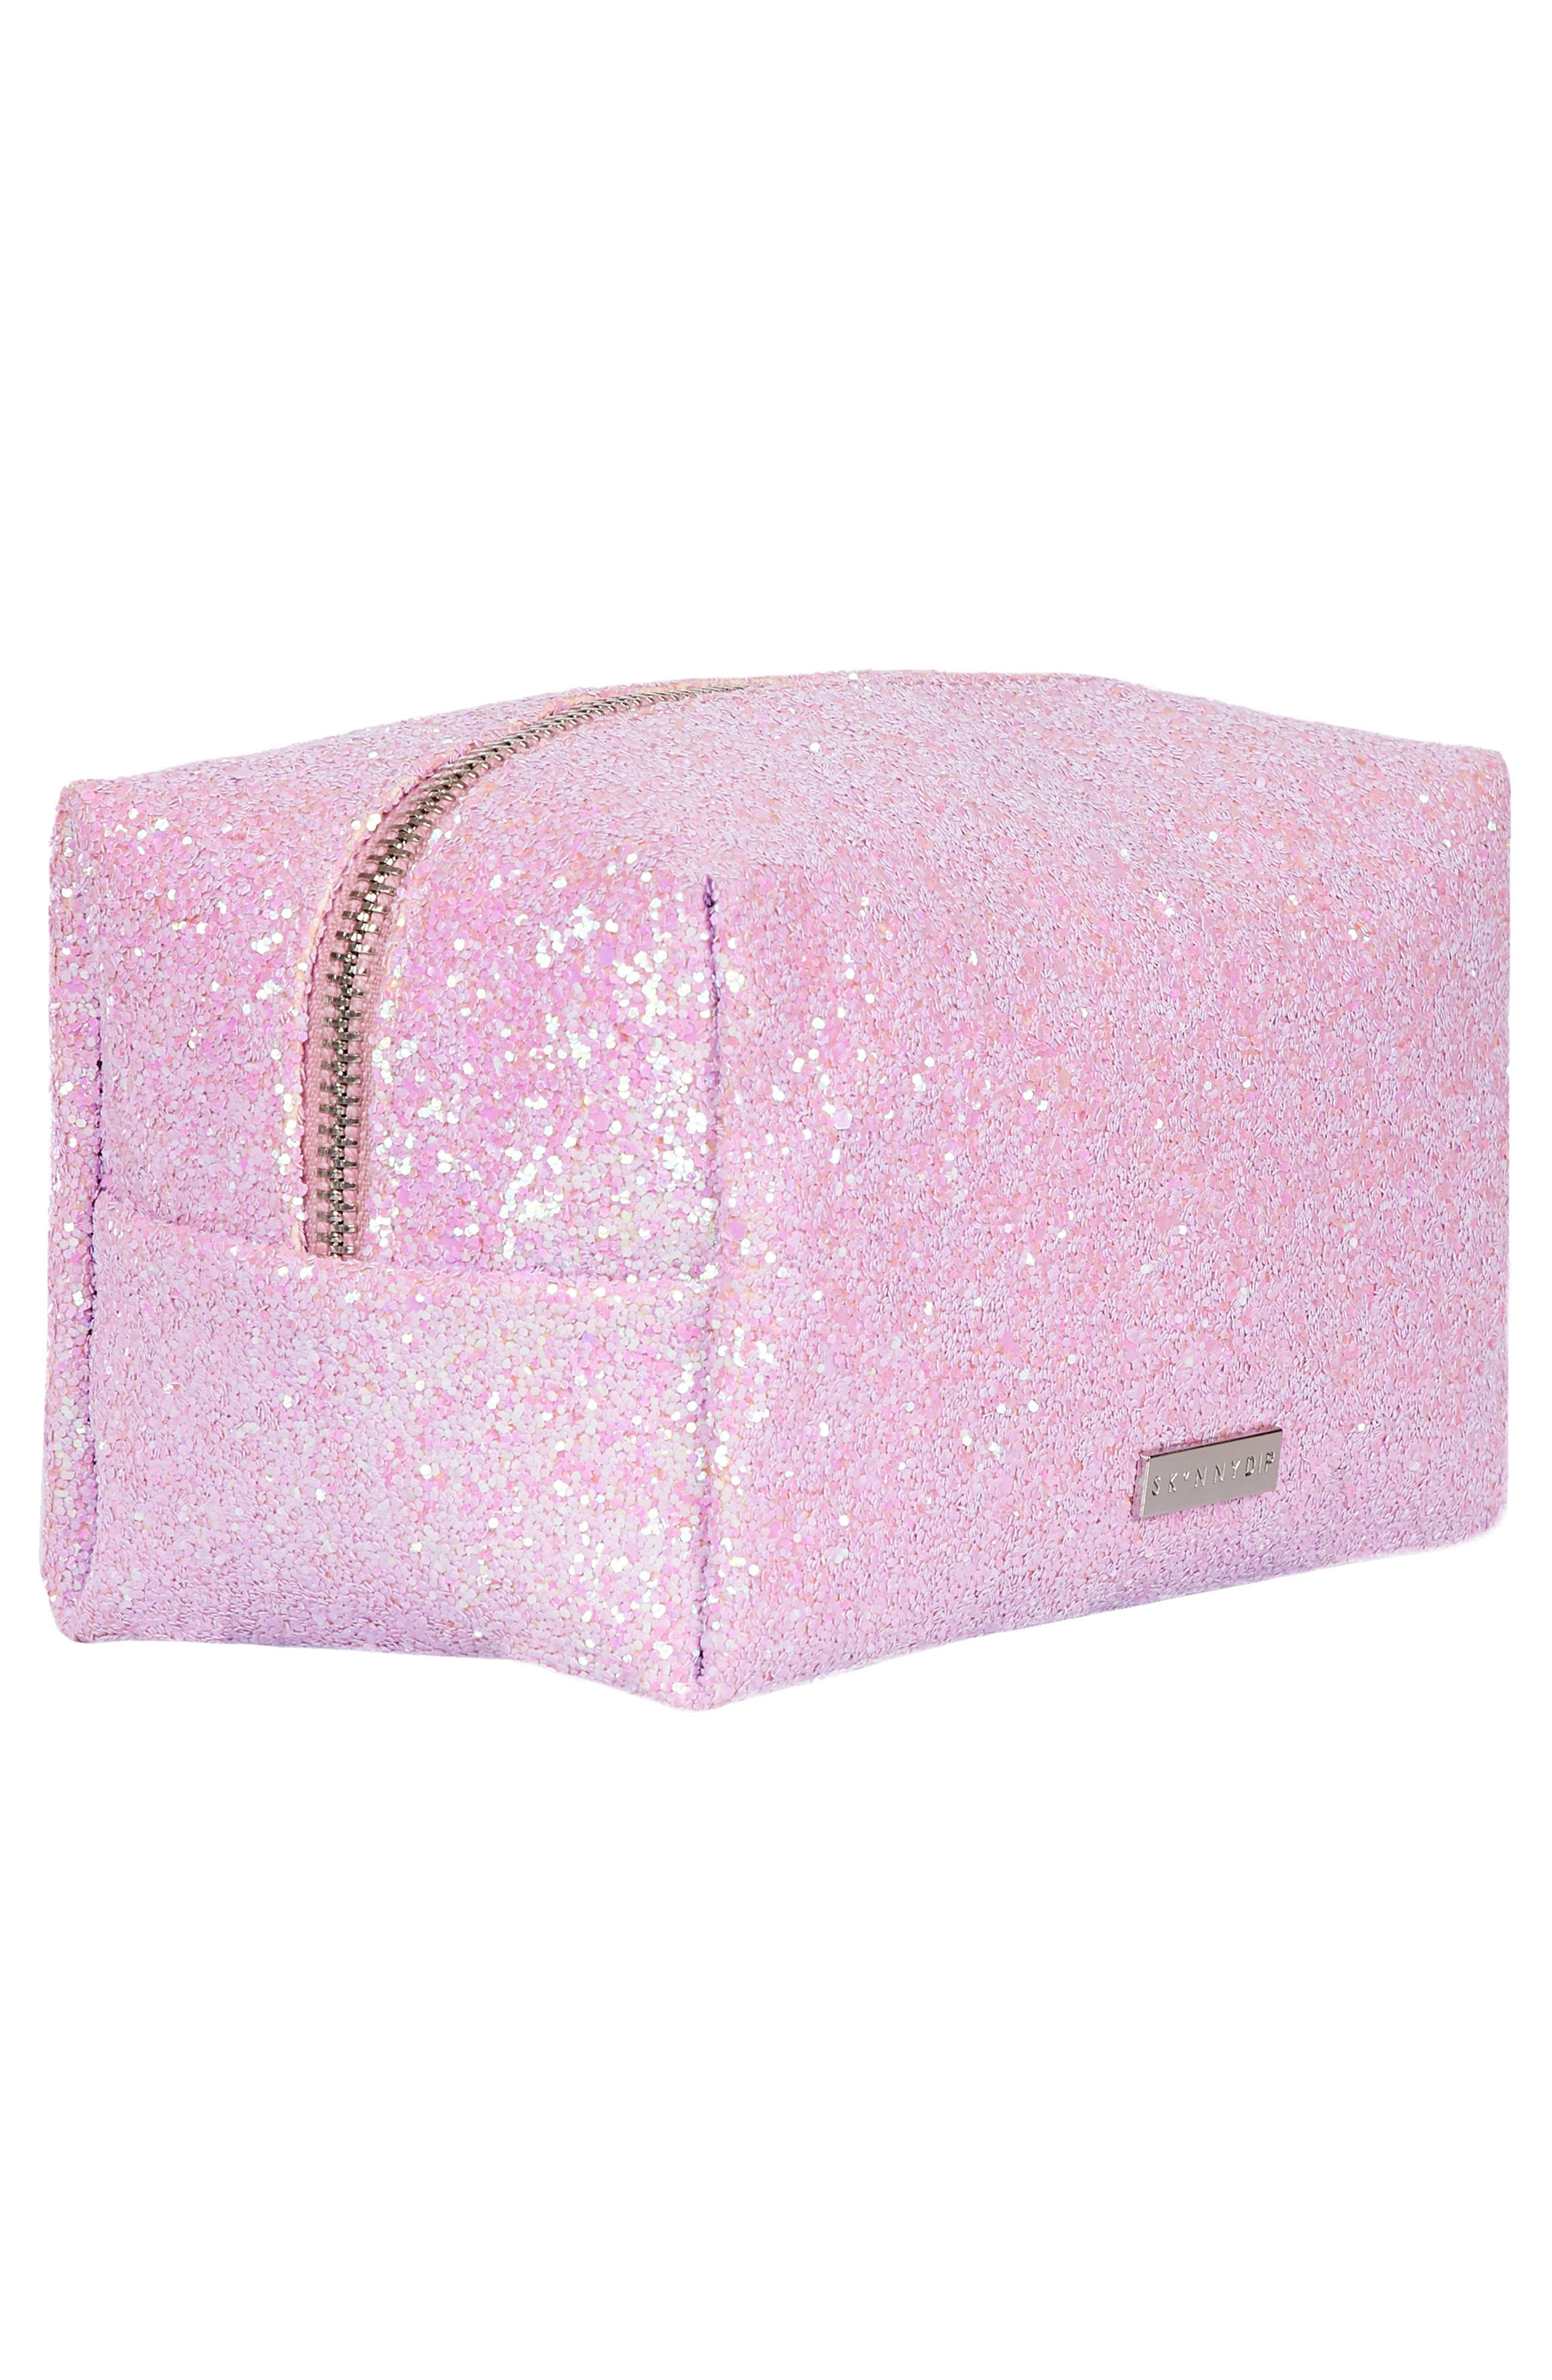 Skinny Dip Pink Glitsy Cosmetics Case,                             Alternate thumbnail 3, color,                             NO COLOR